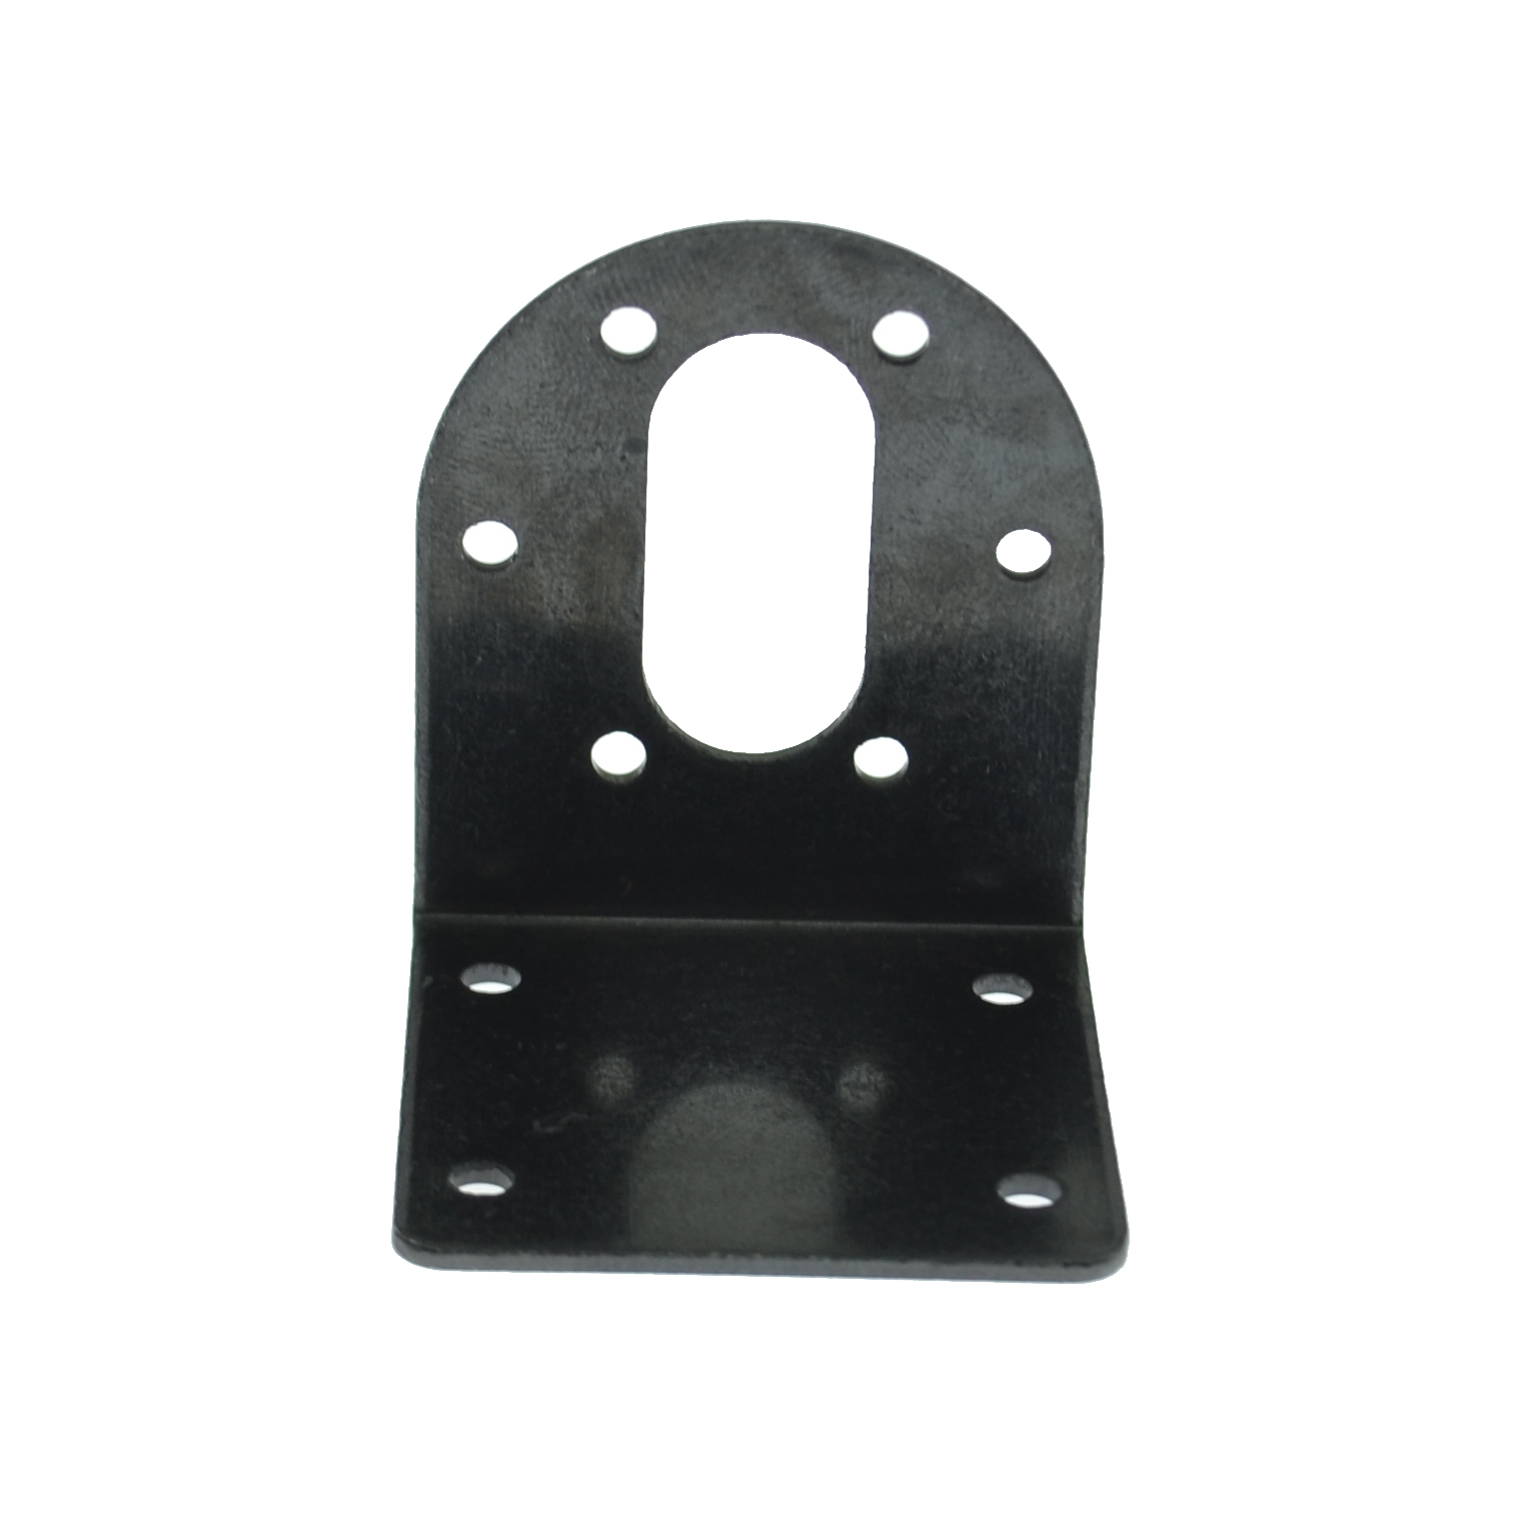 2PCS 37mm DC Geared Motor Mounting Bracket Holder 550 540 Black Metal L Shaped Mounting Bracket